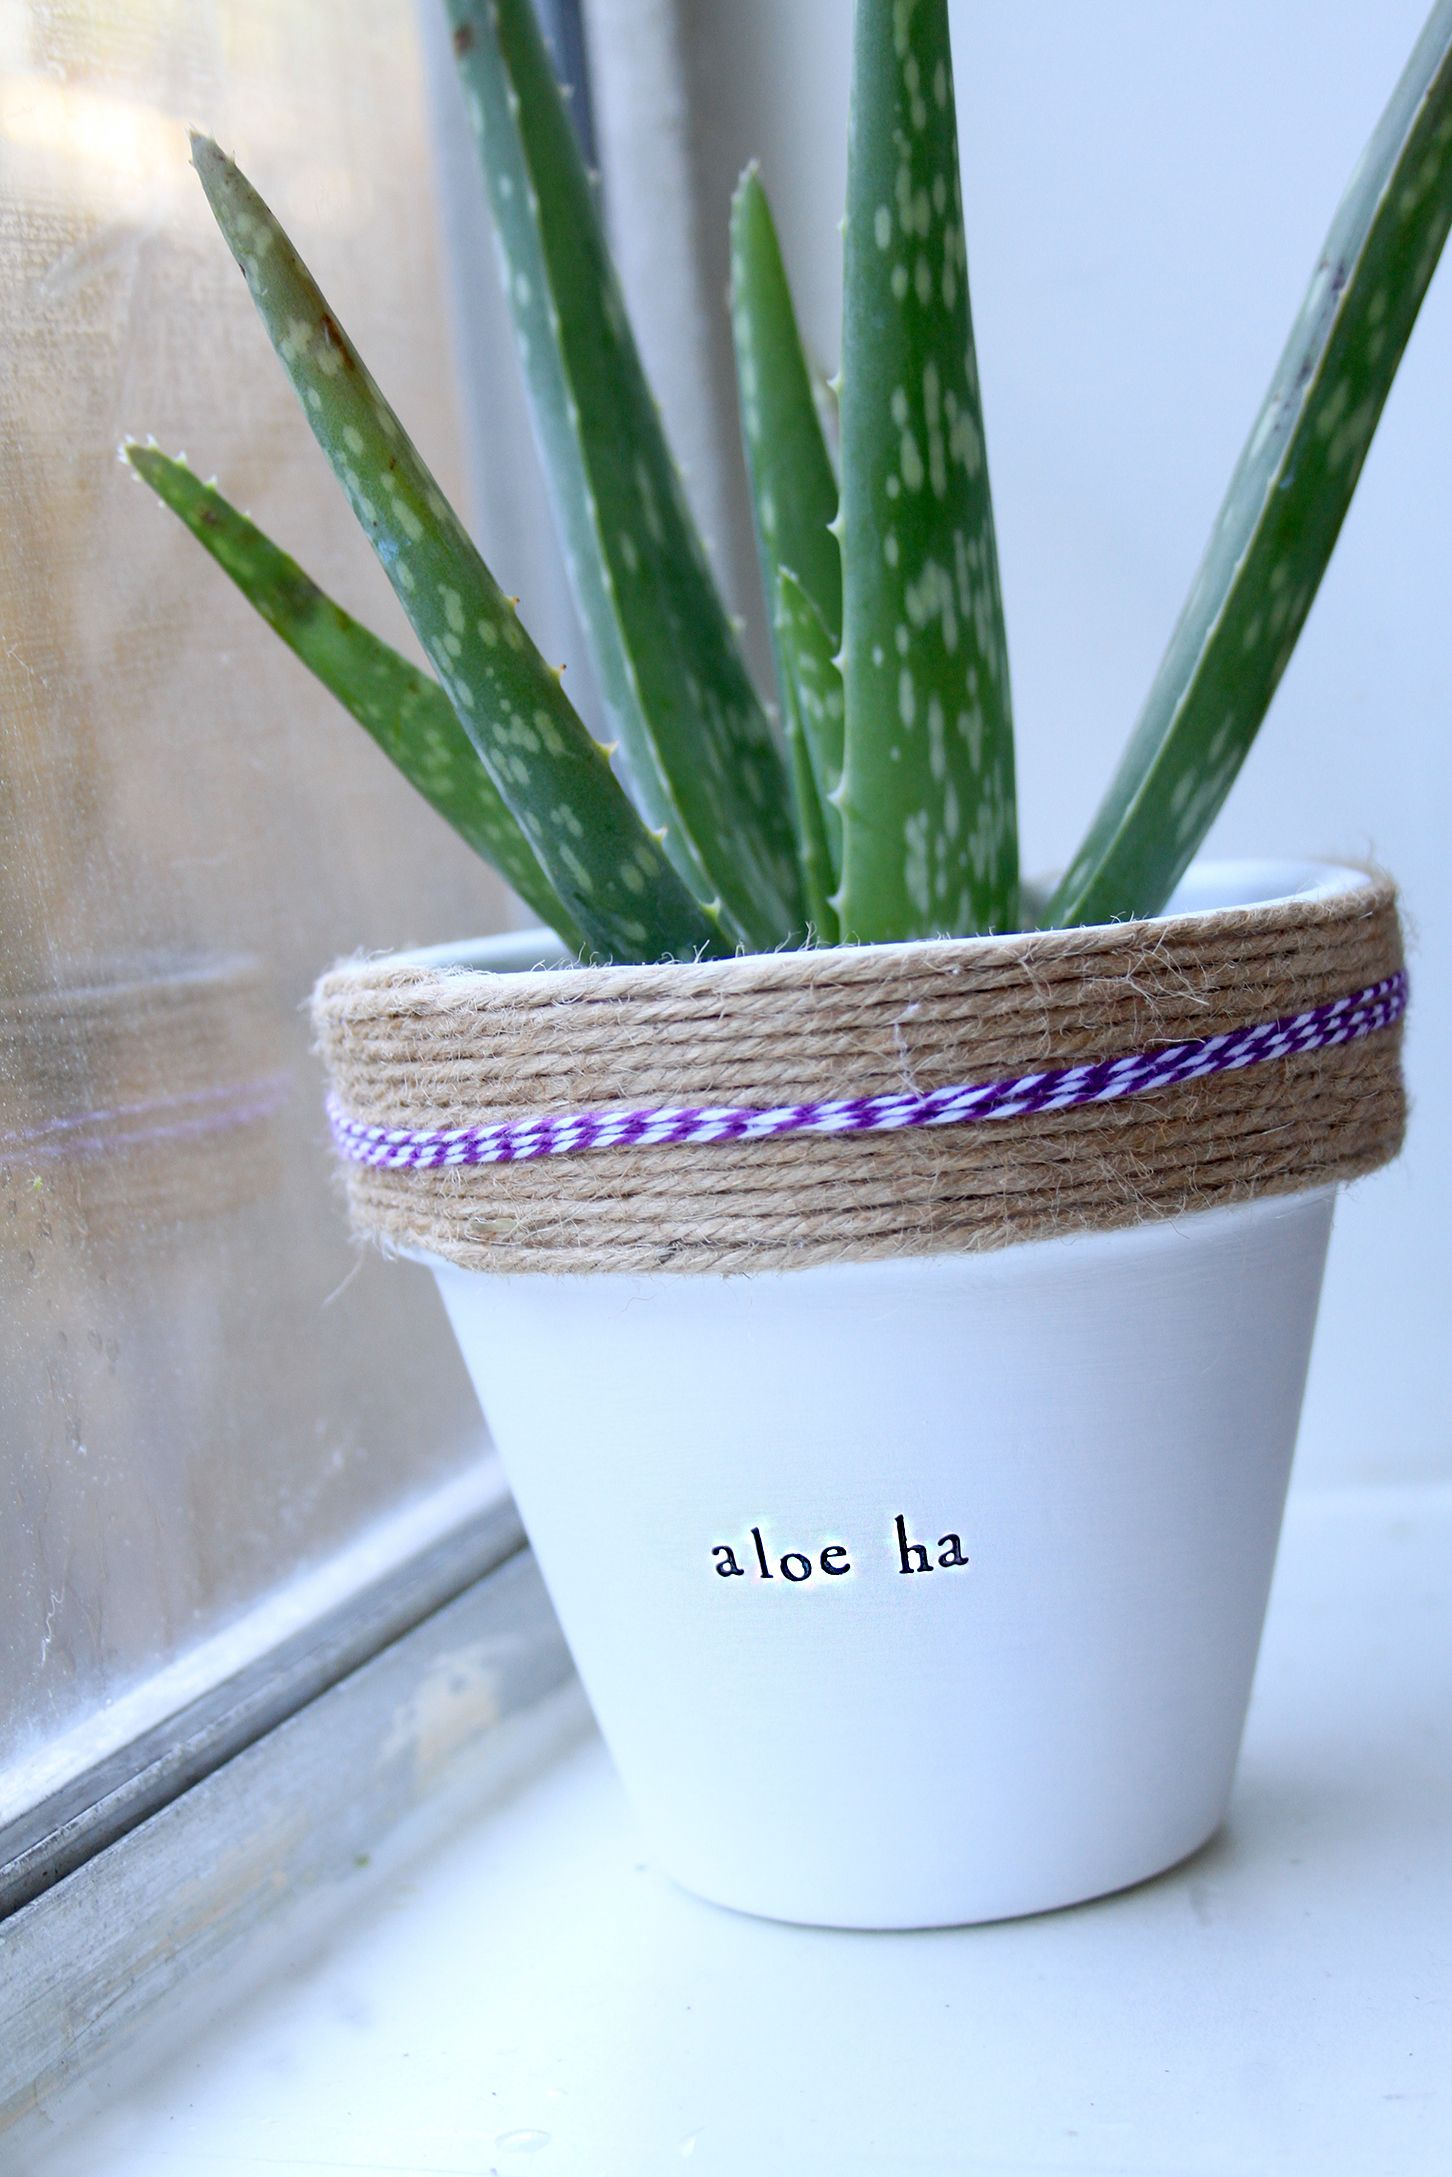 Shop More Potted Plants The Sill: Plant Themed Puns! Check The Whole Store For More! Www